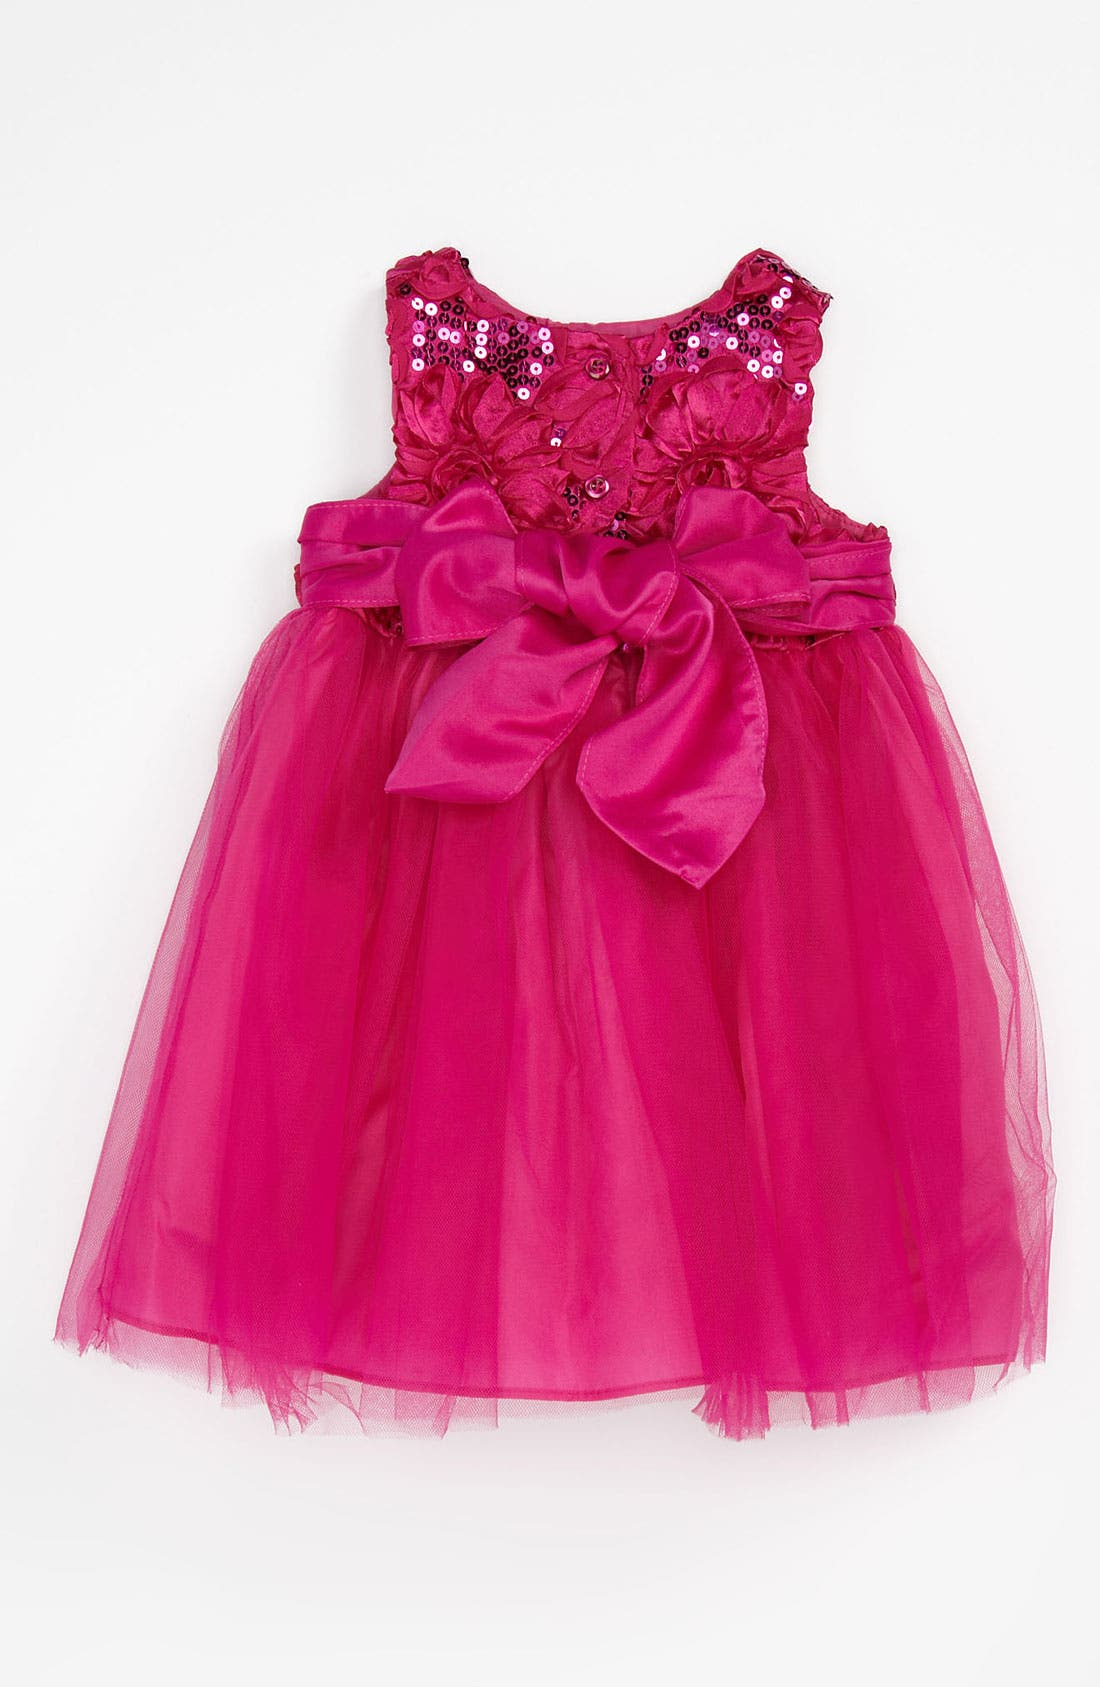 Sequin Ballerina Dress,                             Alternate thumbnail 2, color,                             650